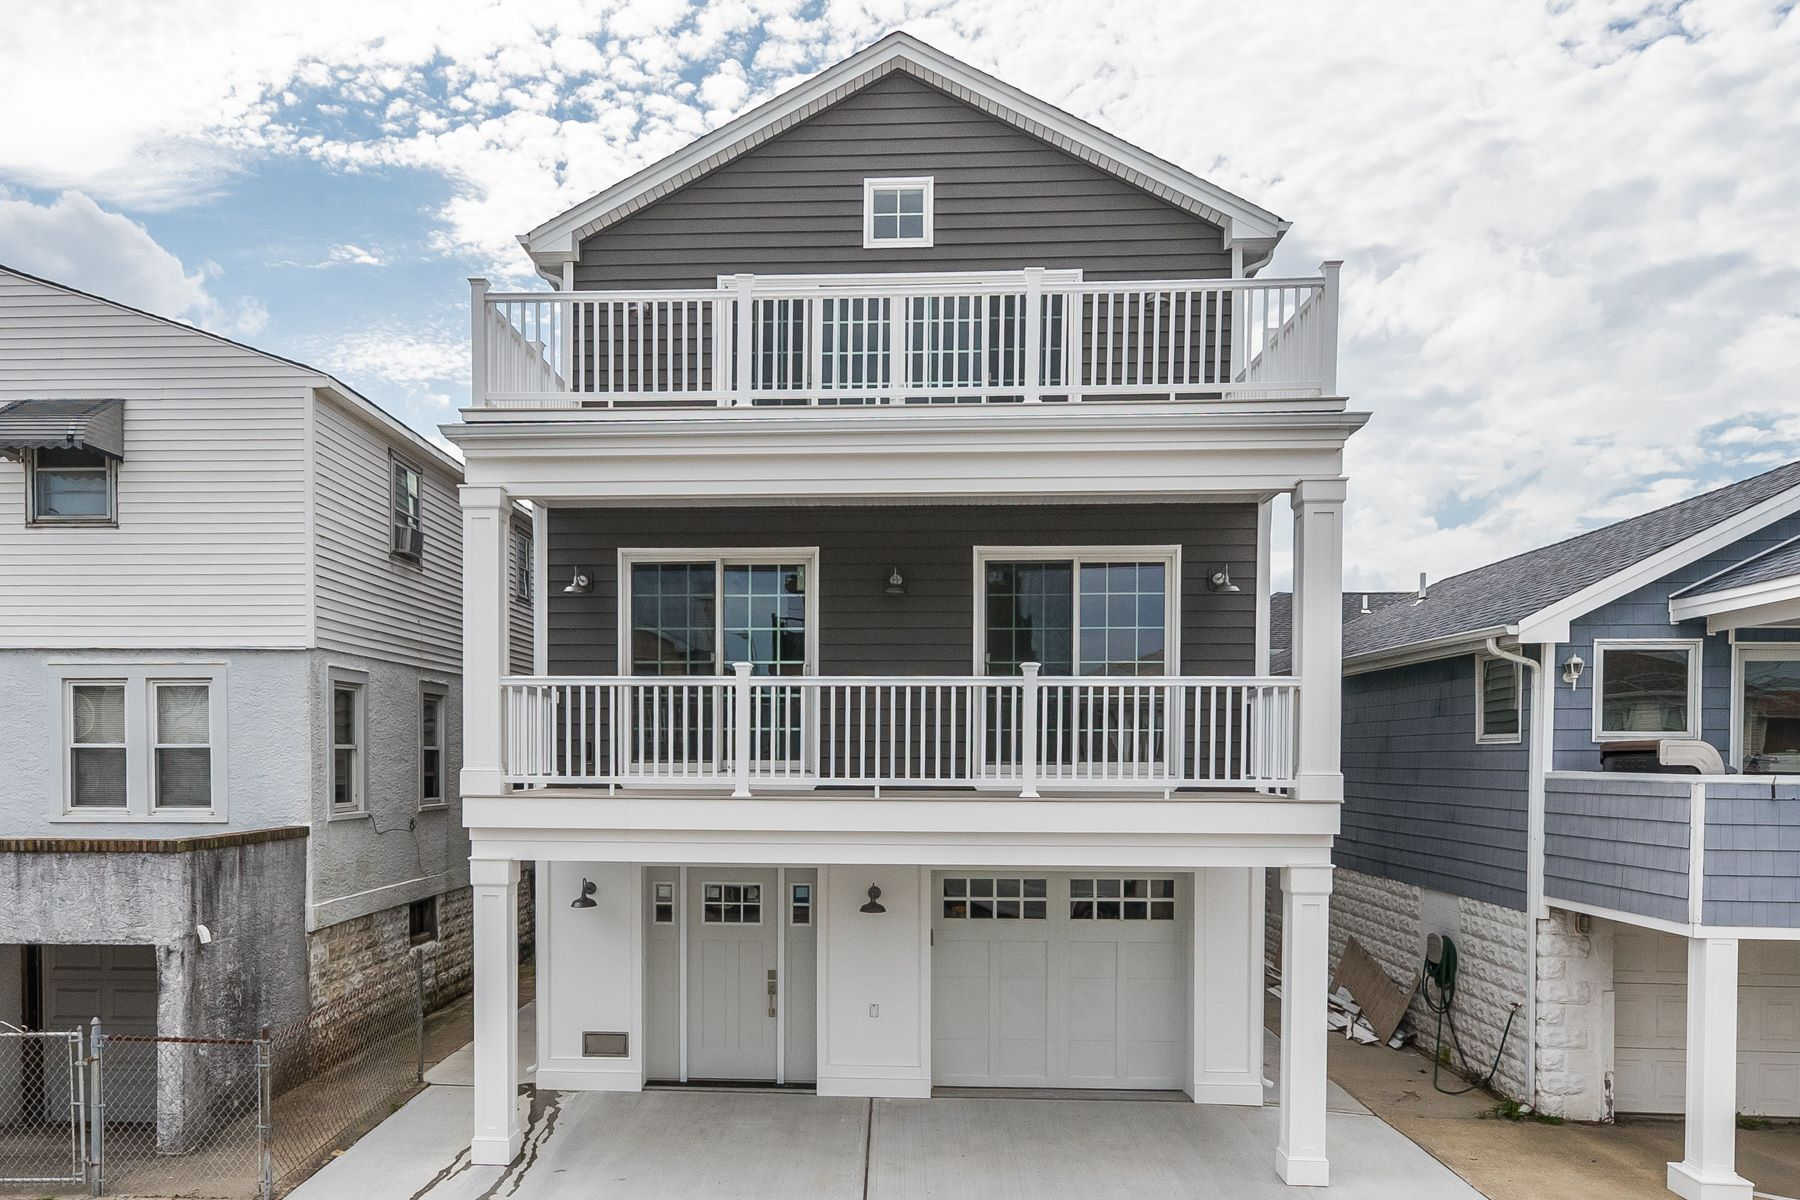 Single Family Homes for Active at Long Beach 101 Tennessee Long Beach, New York 11561 United States